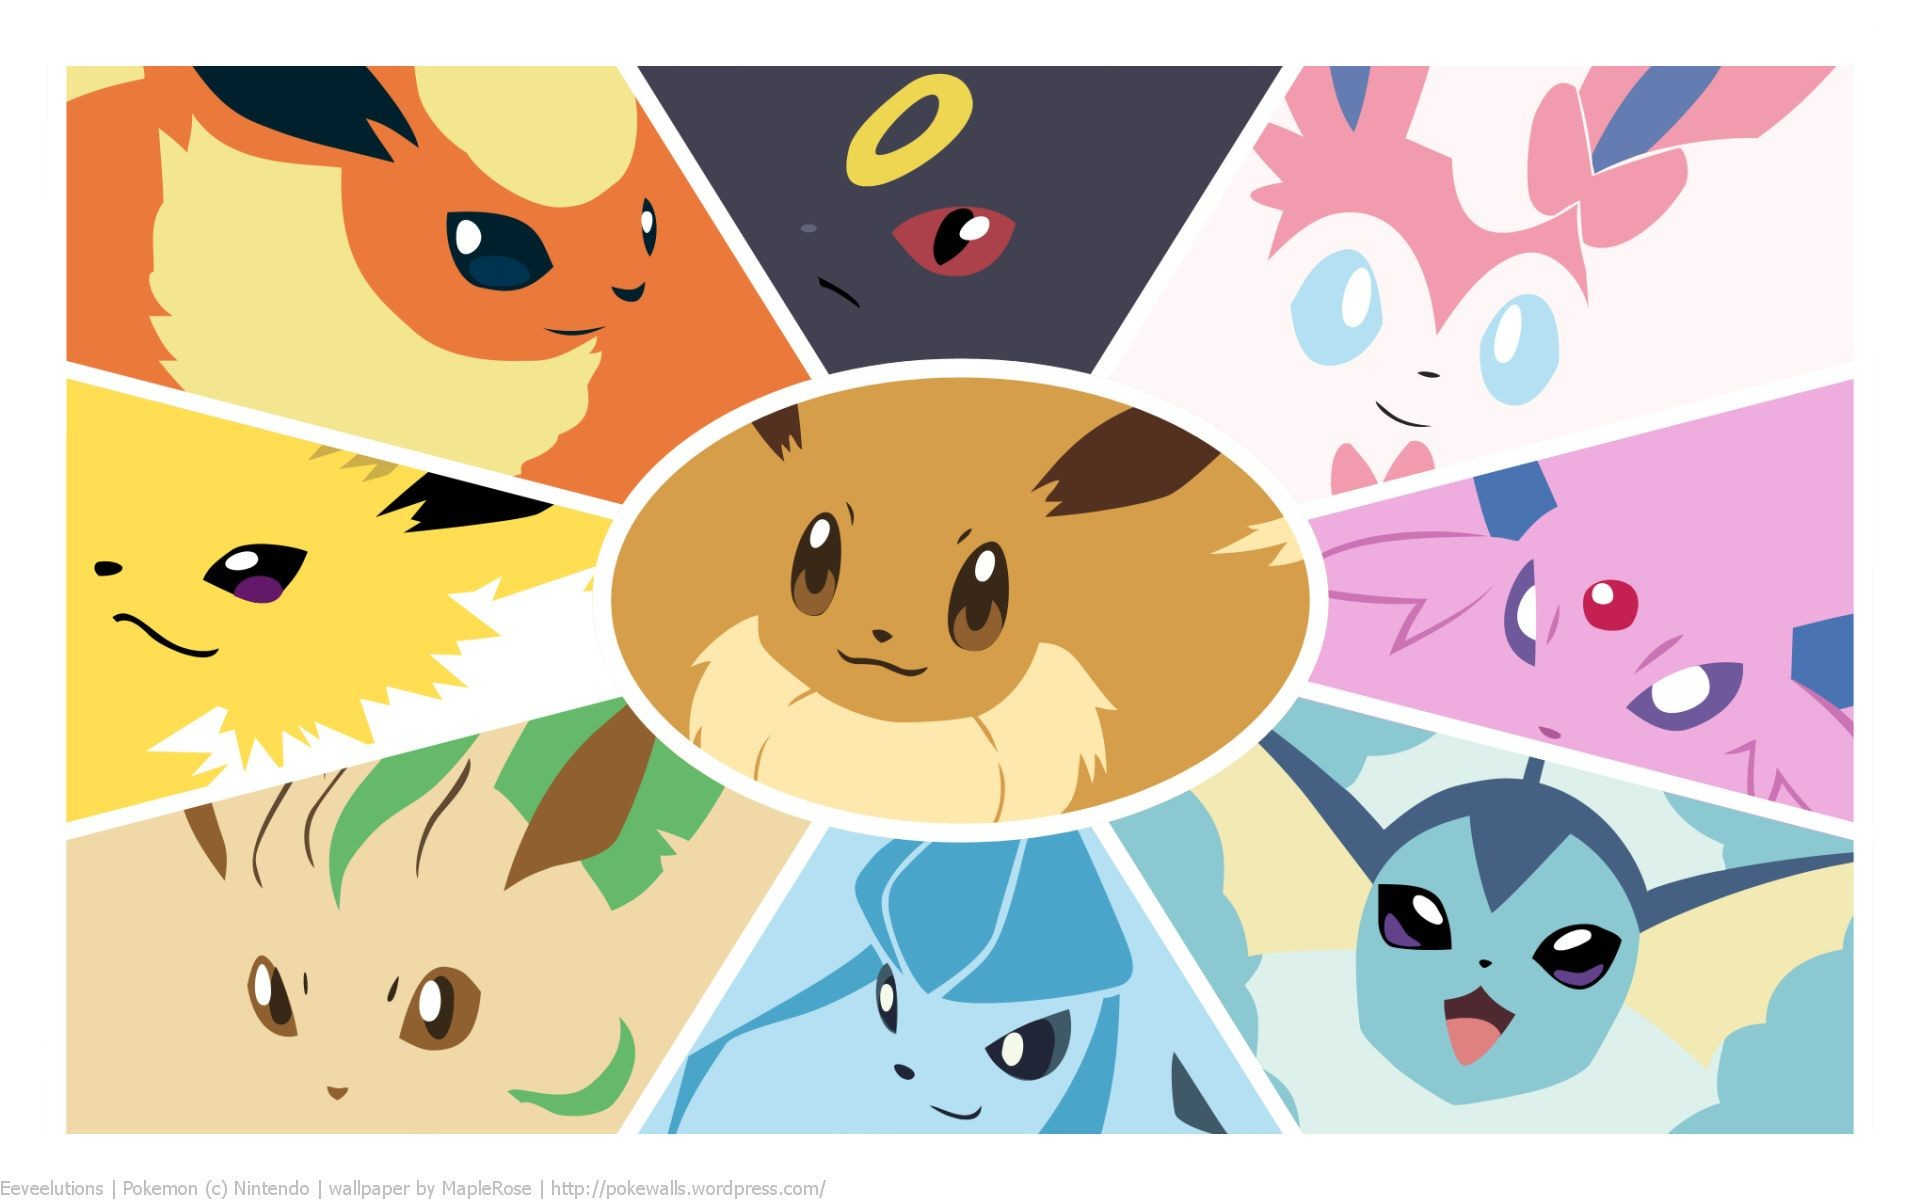 Eevee wallpaper ·â'  Download free beautiful backgrounds for